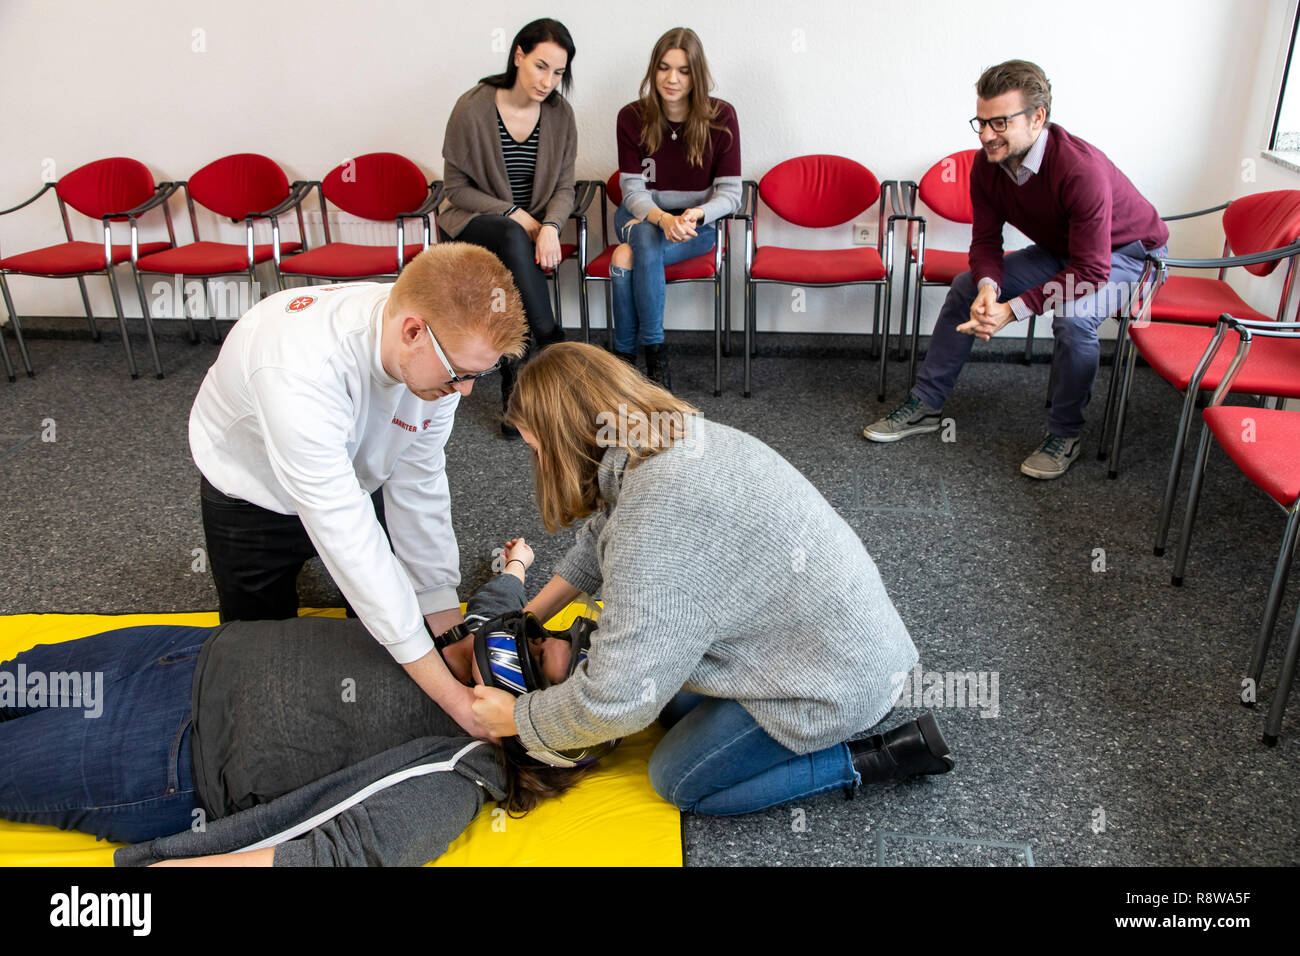 First aid course, first aid training in case of accidents, emergencies, practice training, proper removal of the safety helmet in the case of an accid Stock Photo